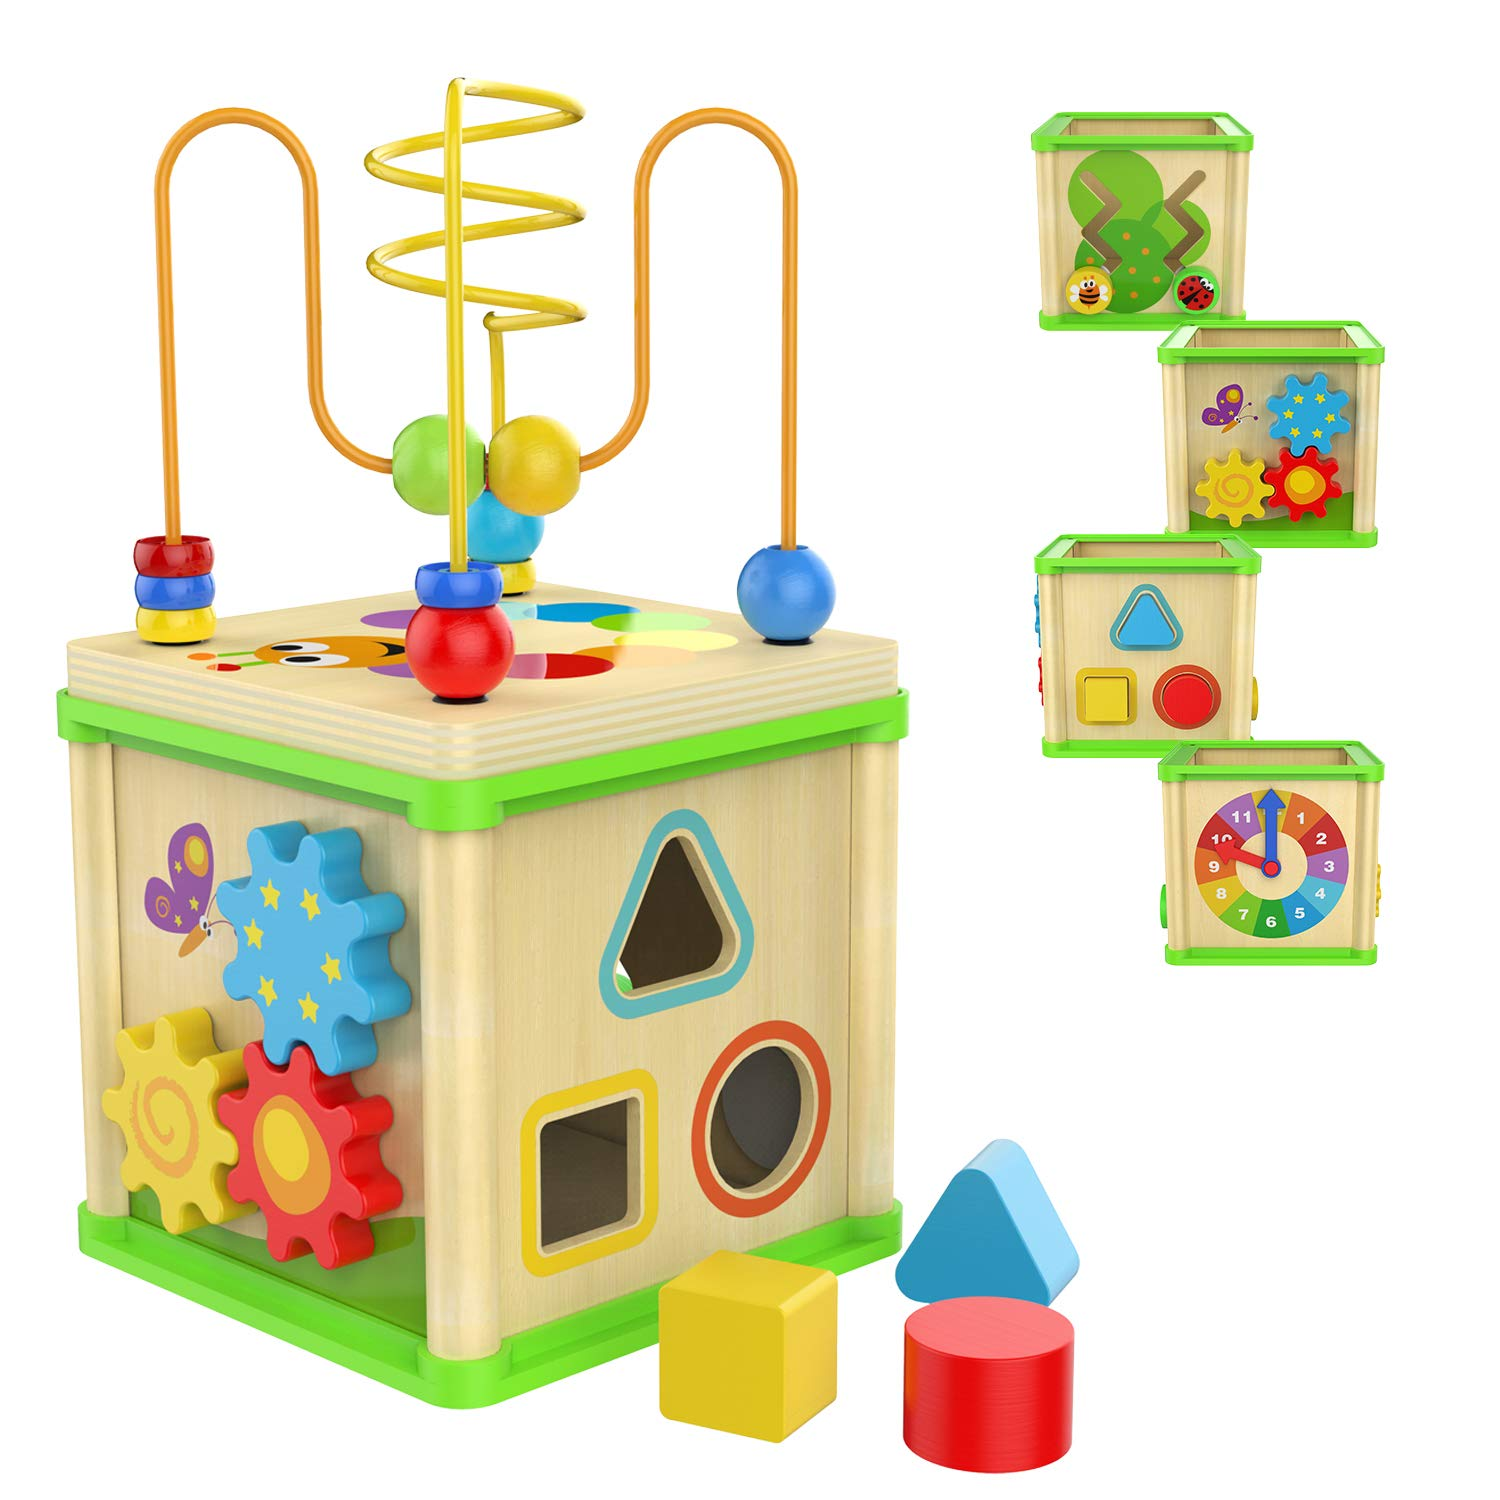 TOP BRIGHT Wooden Activity Cube - 1 Year Old Shape Shorter Bead Maze Toy Educational Baby Gifts for One Year Old Boys